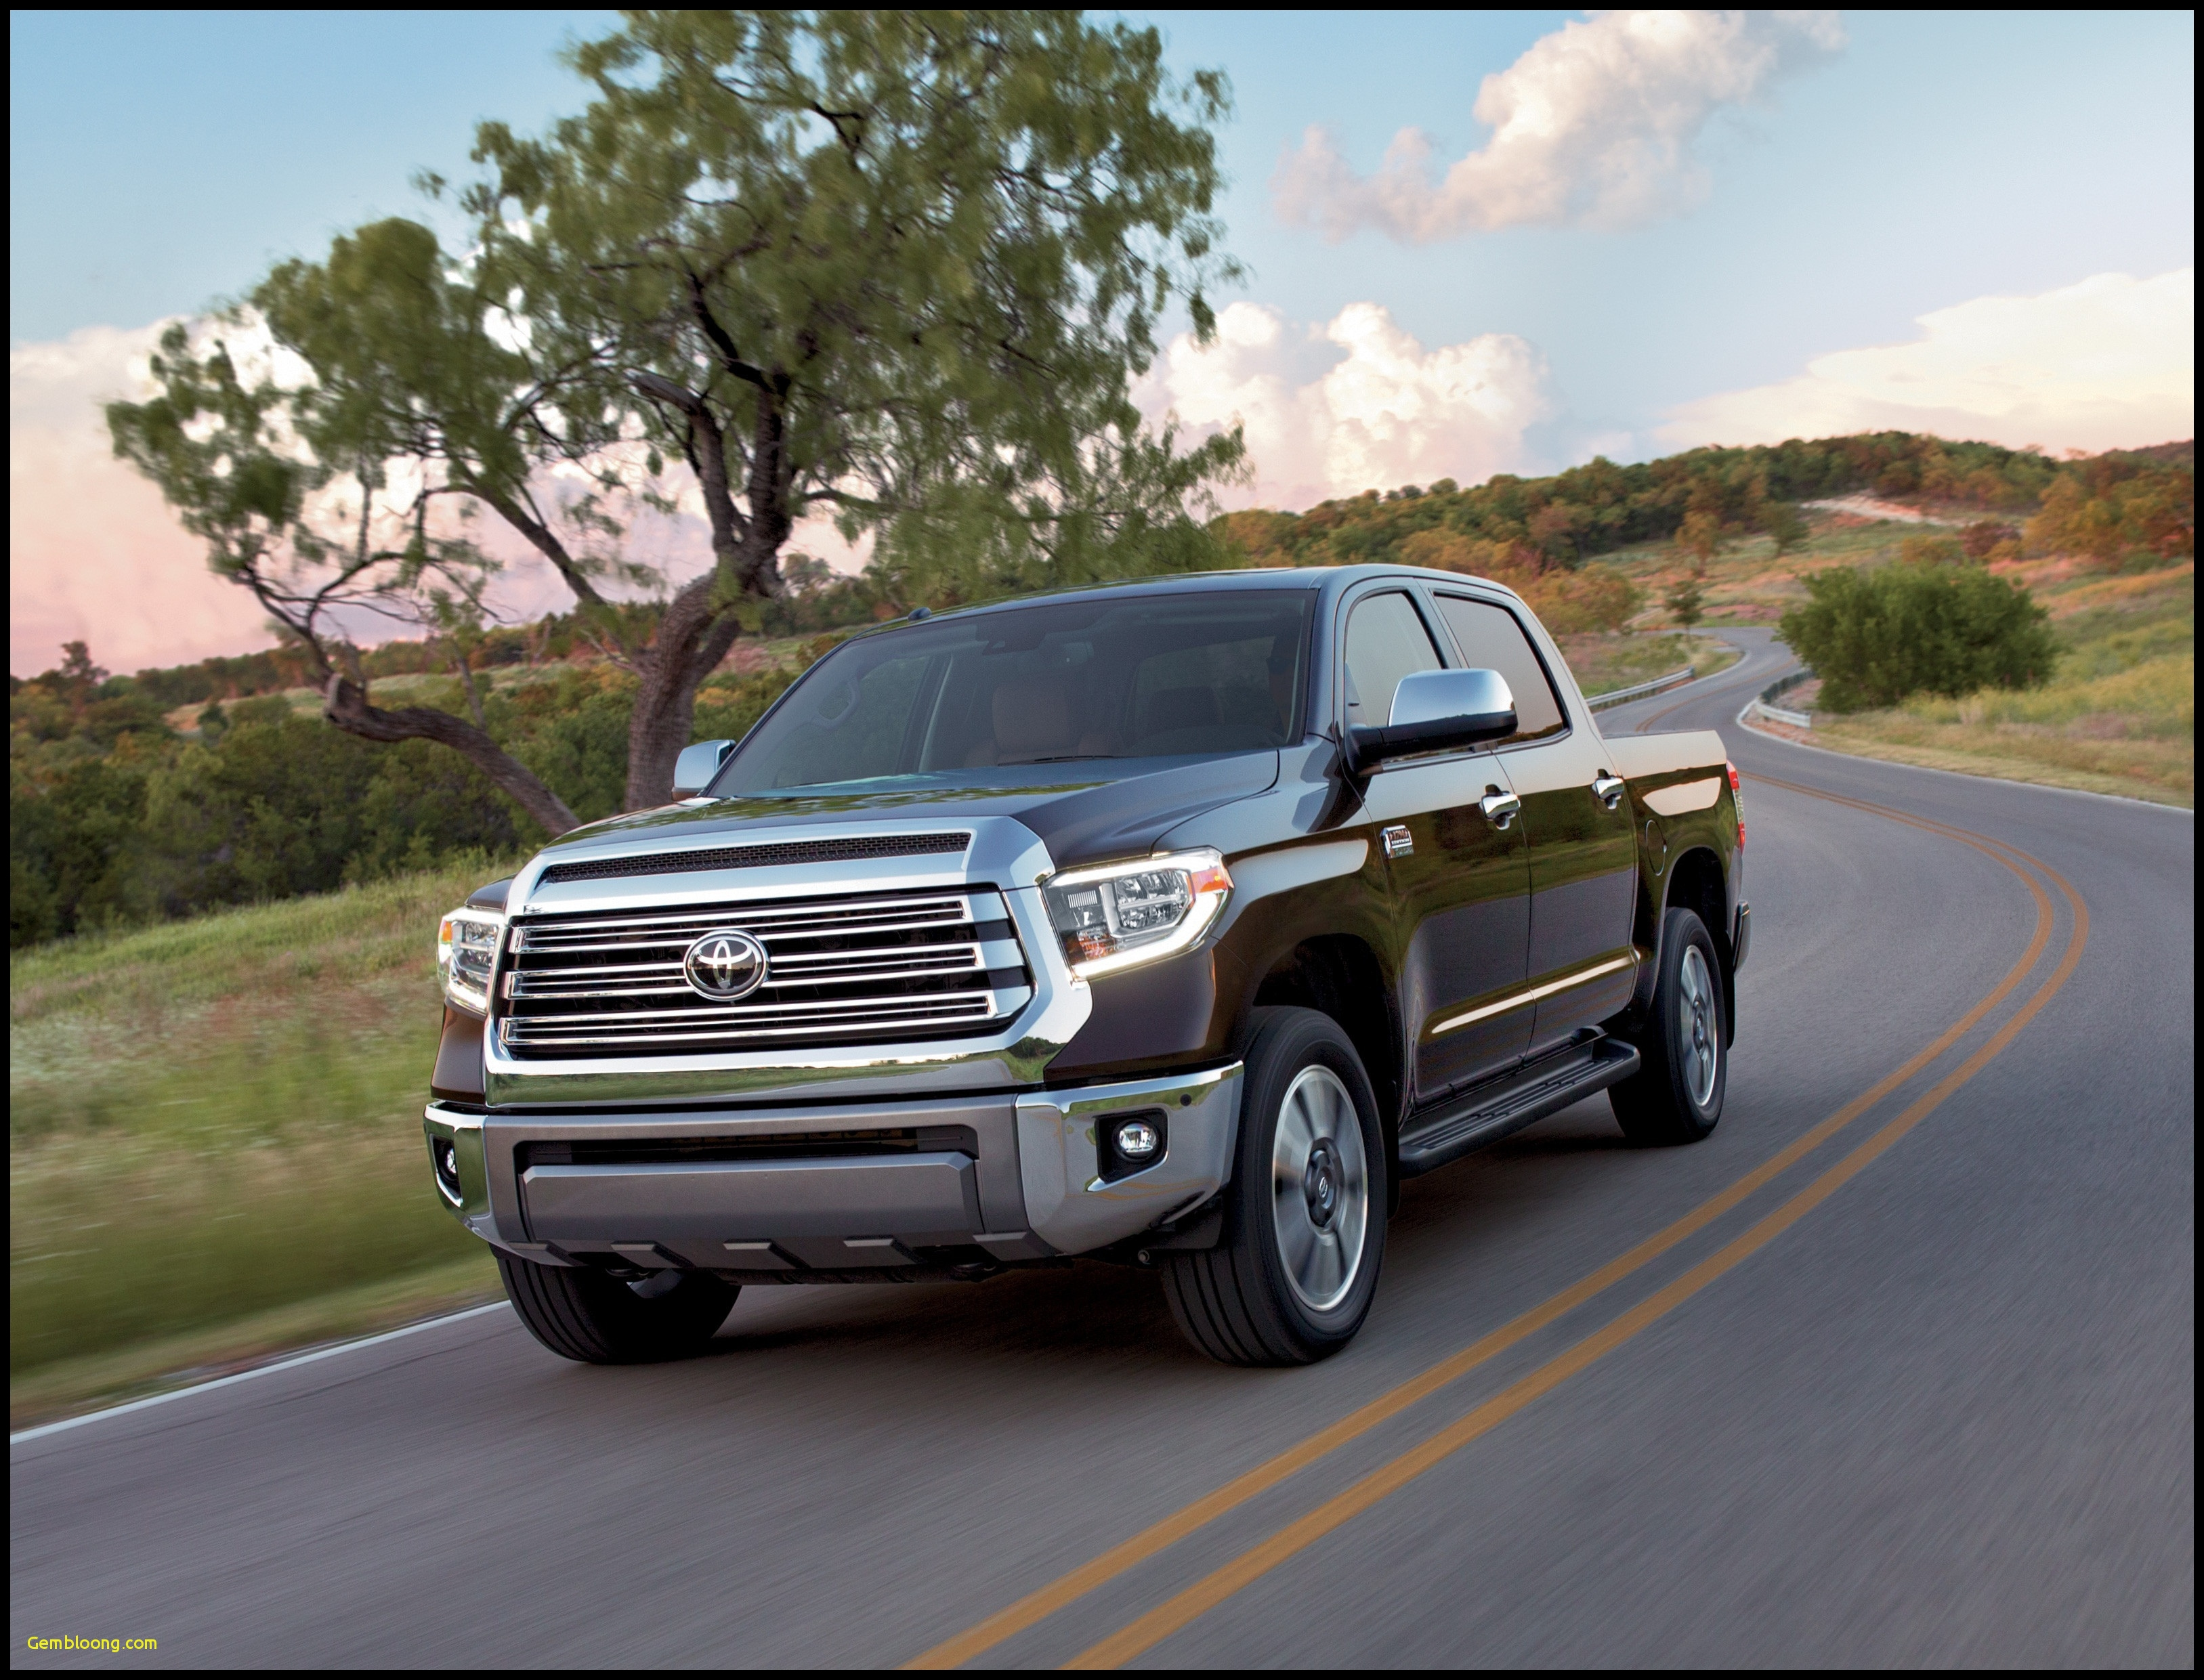 2019 toyota Tundra Reviews and 2019 Tundra 2019 Tundra Specs 2019 toyota Tundra Price Awesome